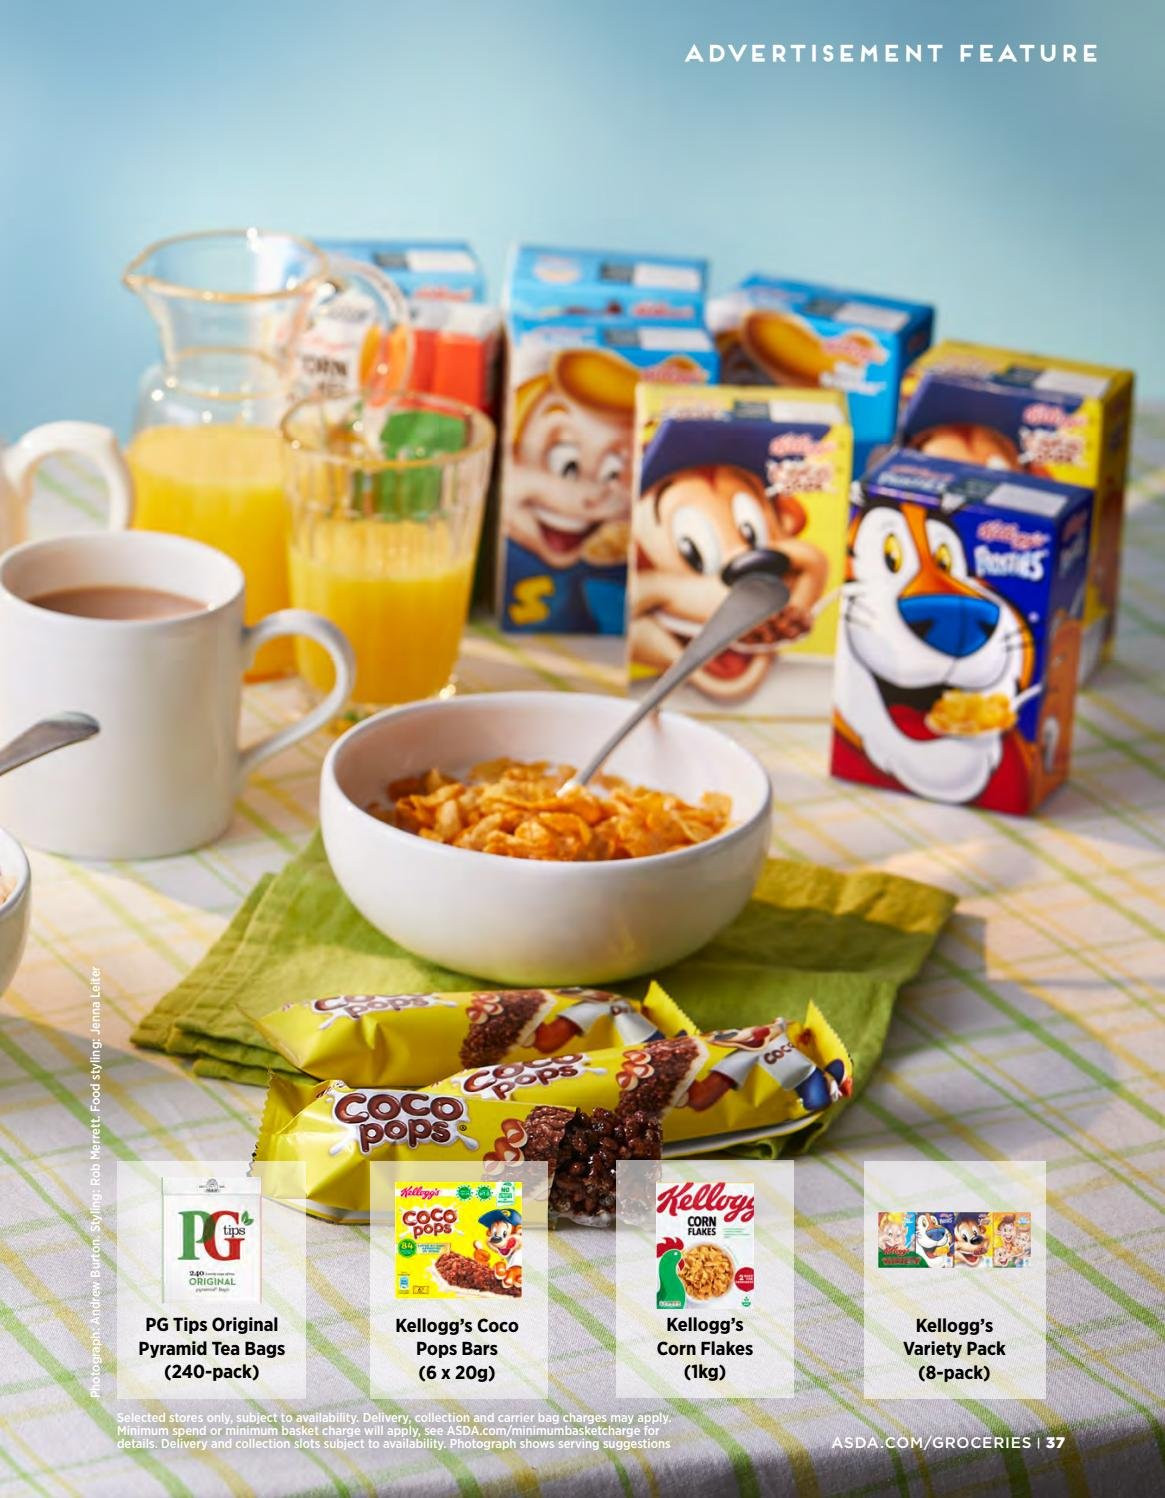 ASDA offer  - 1.2.2019 - 28.2.2019 - Sales products - bag, basket, corn, tea, corn flakes, coco pops, flakes. Page 37.